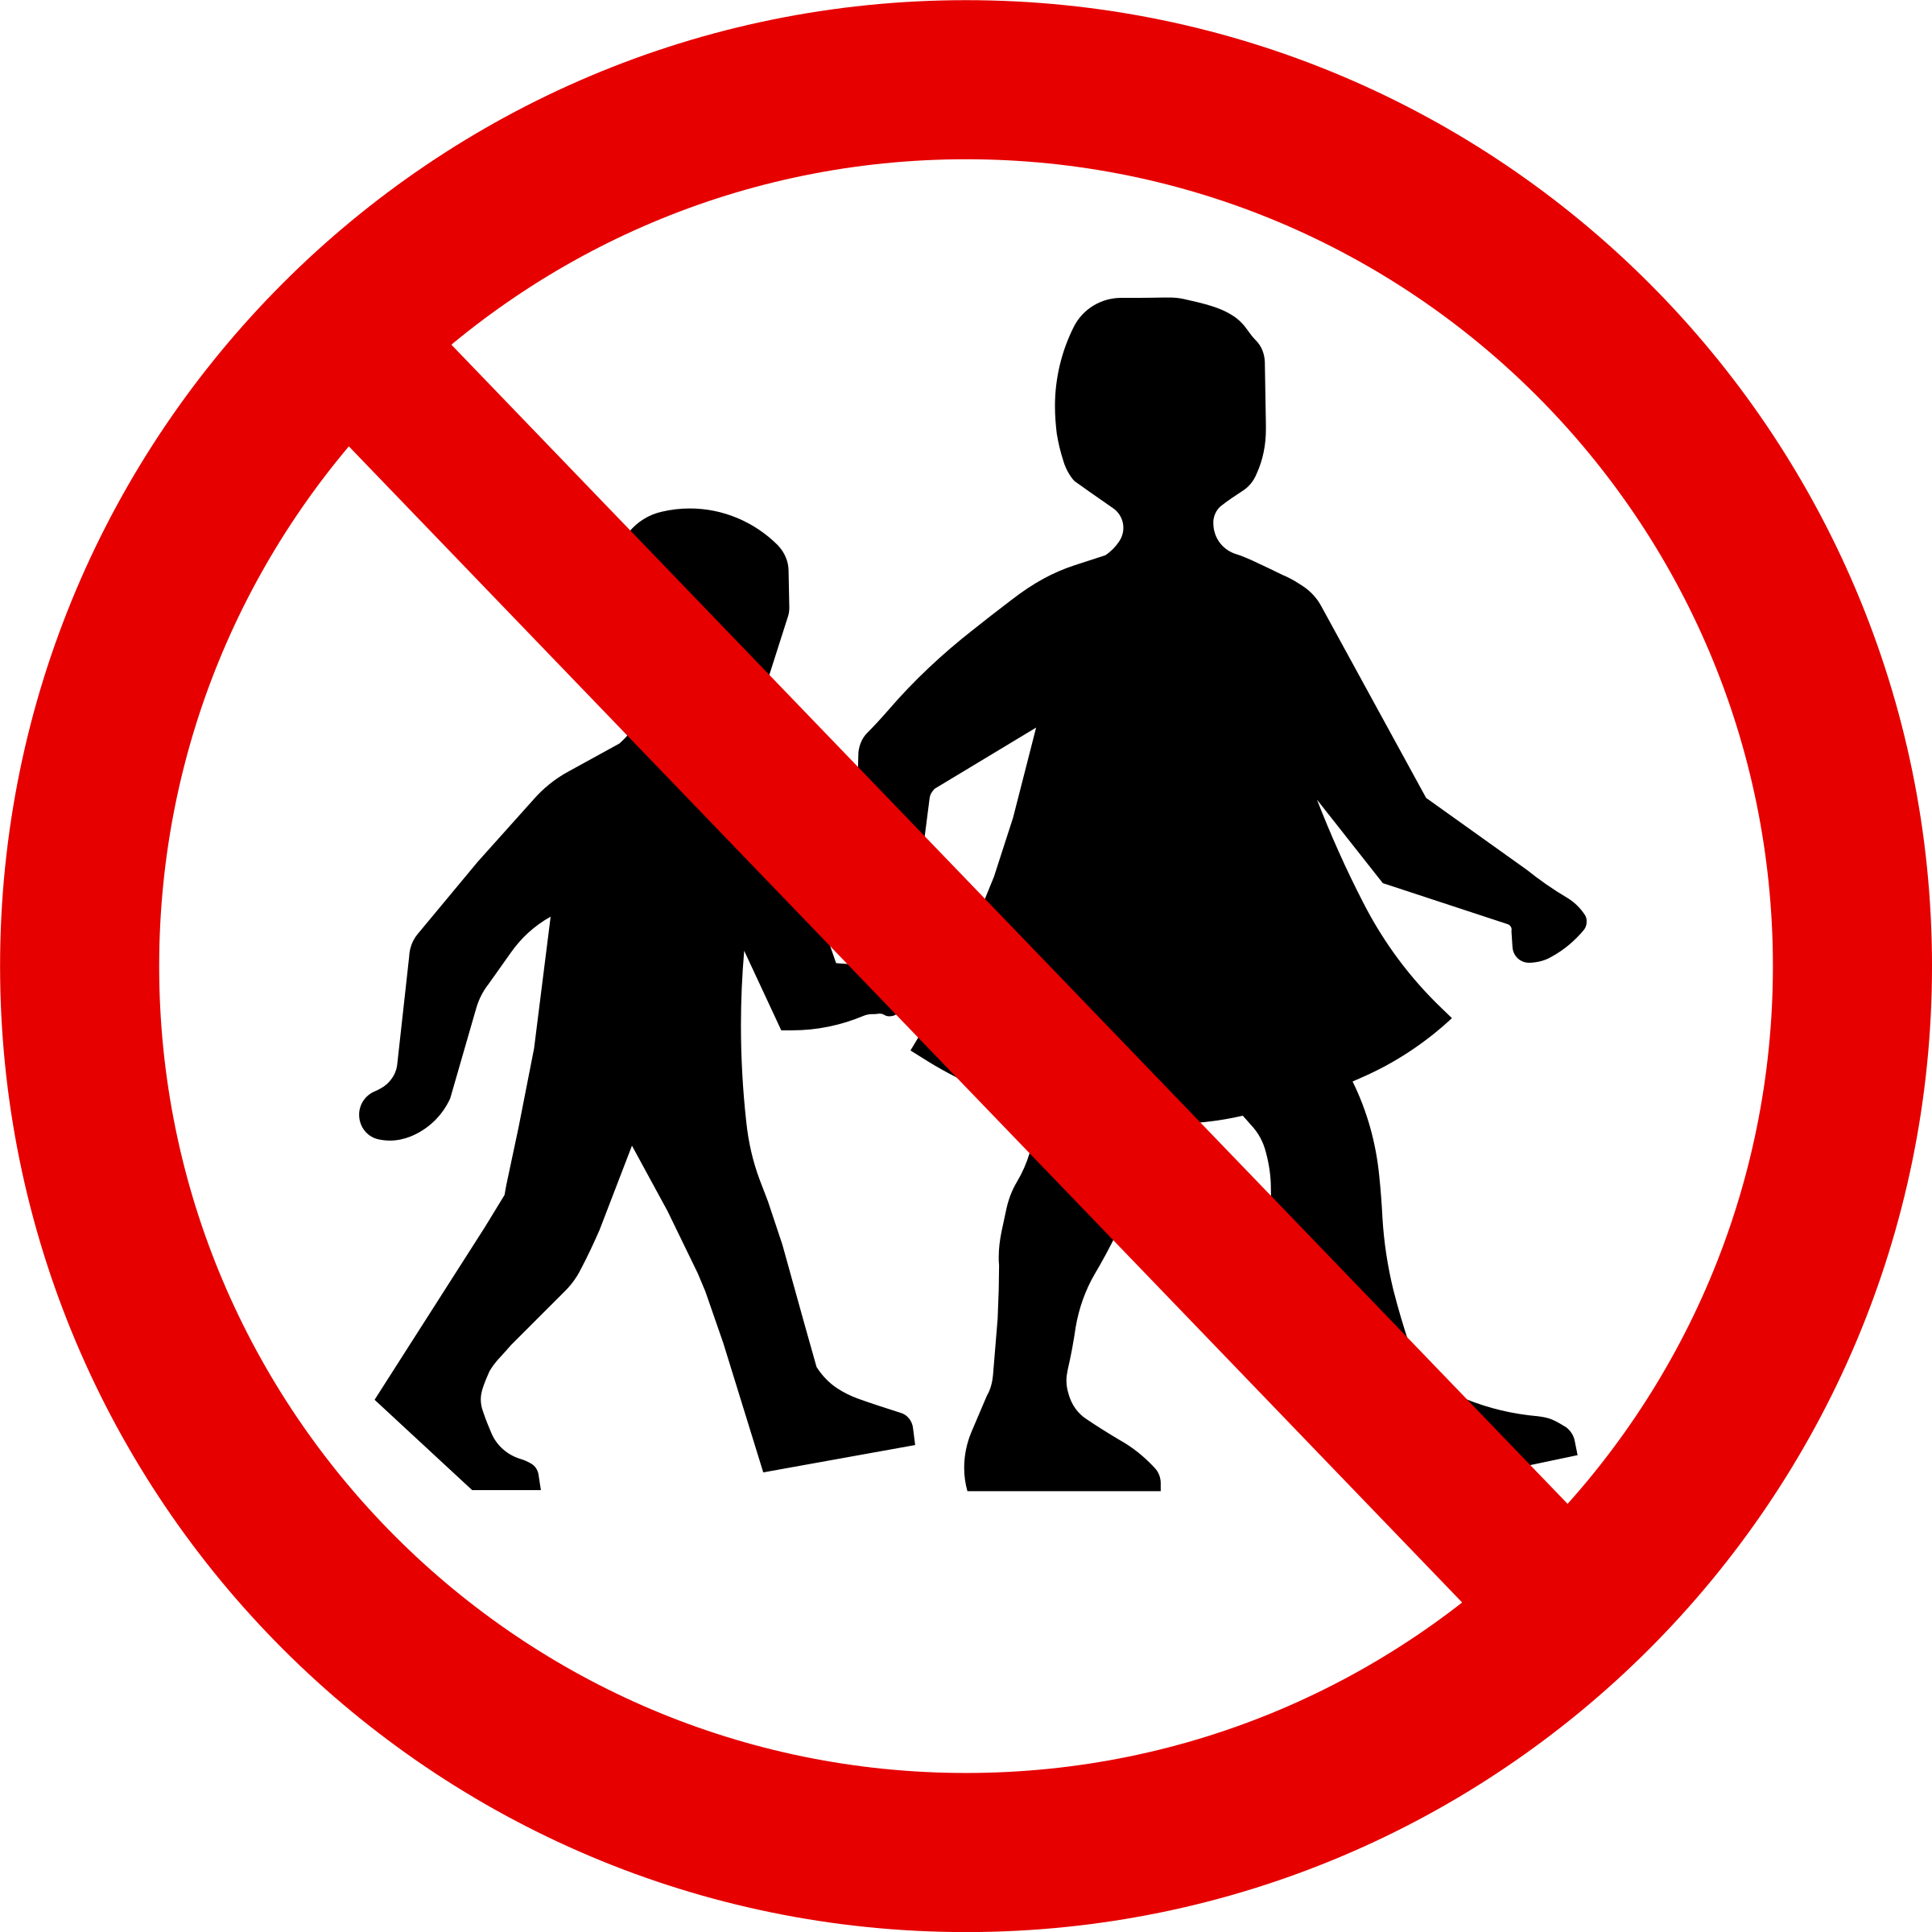 picture library download Children sign. No clipart